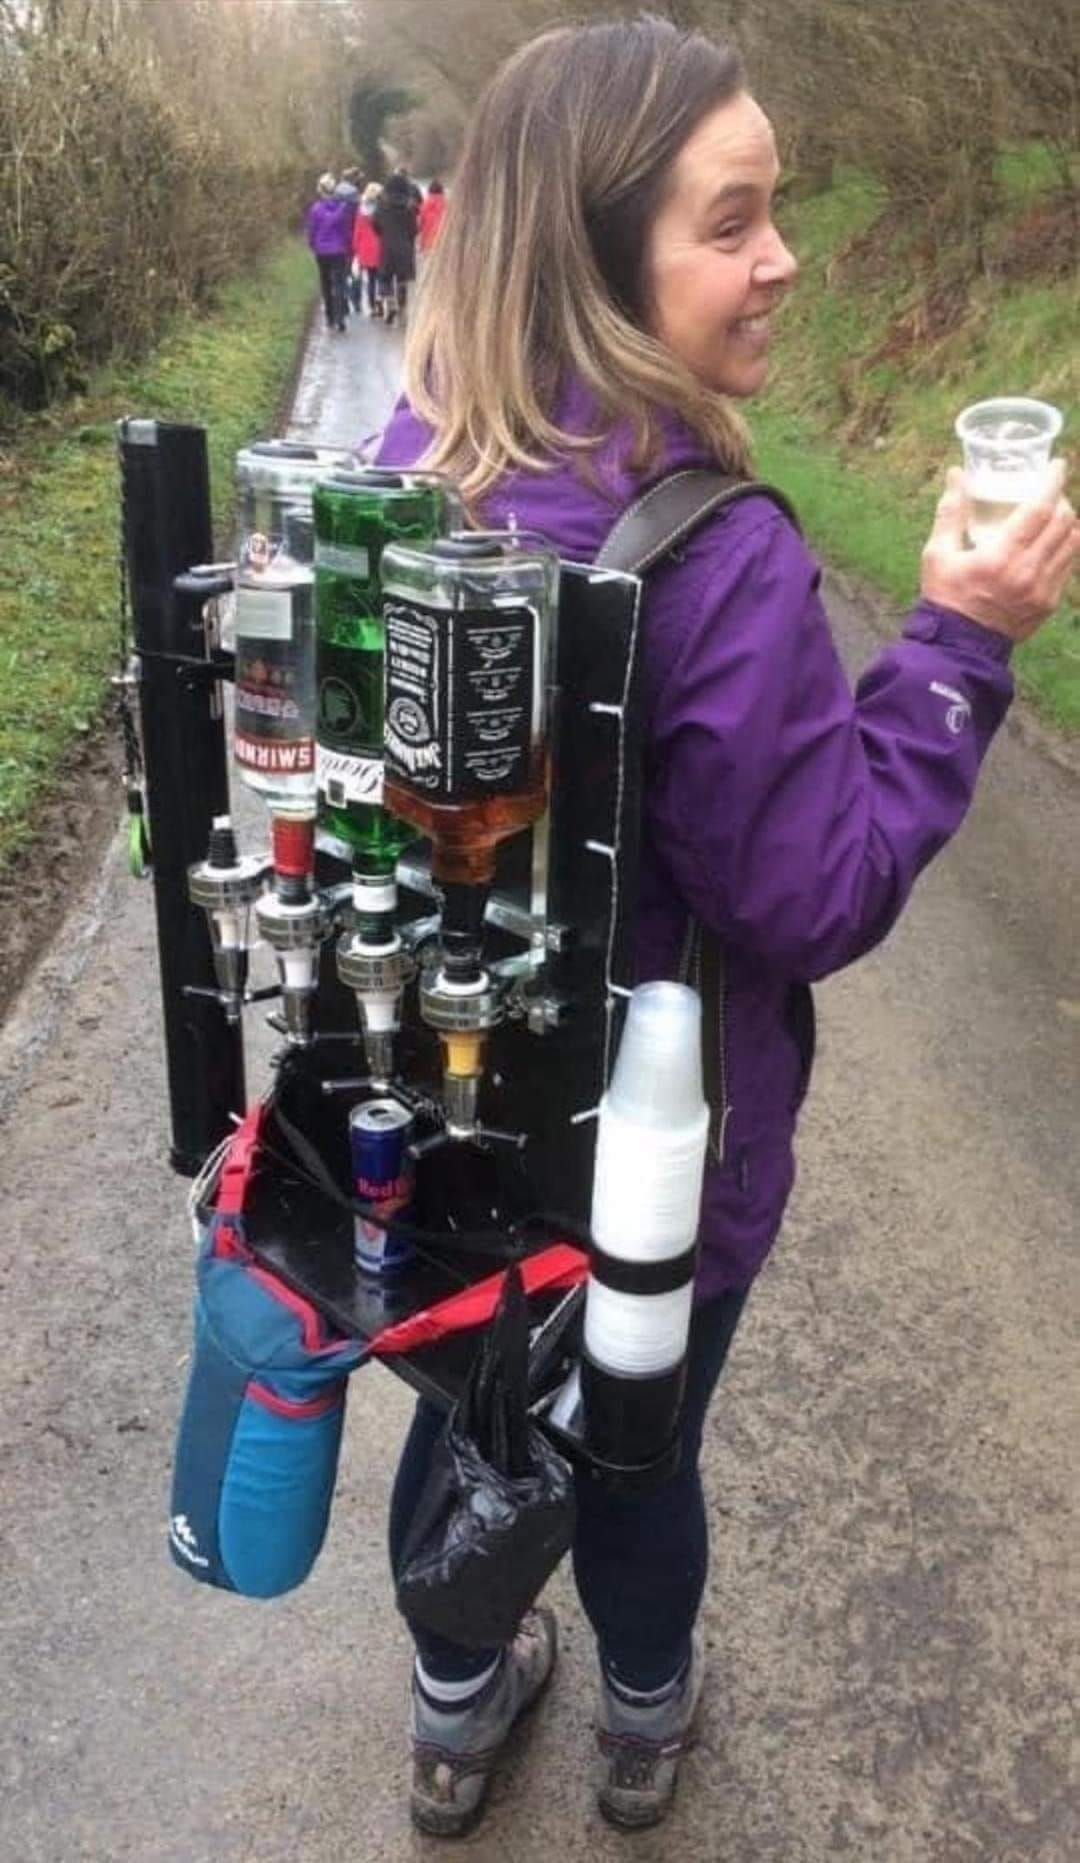 For quick drinks on the go